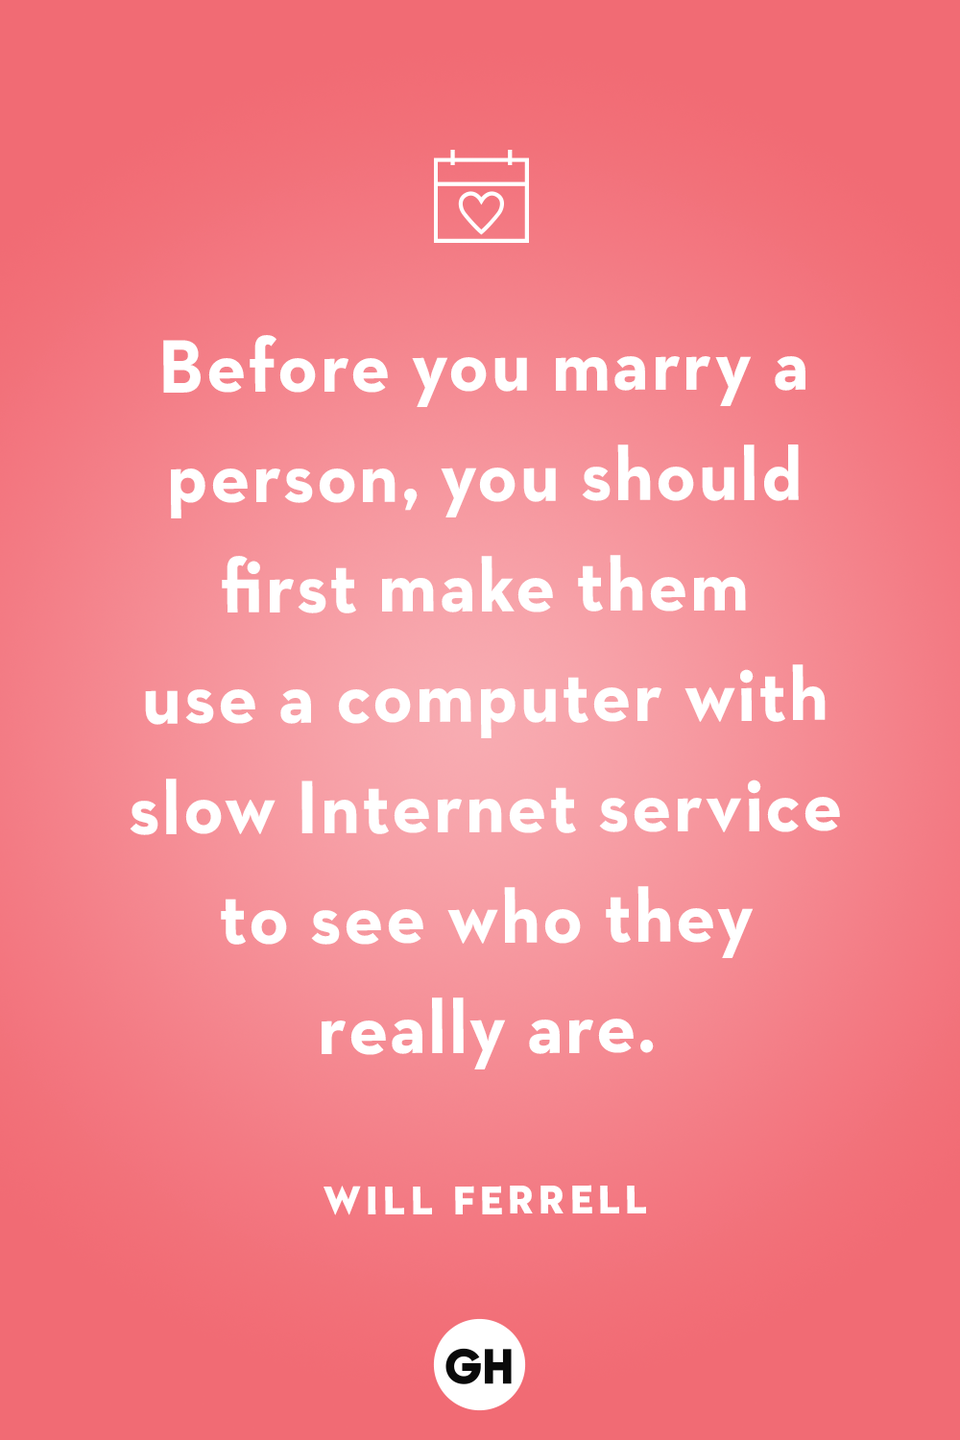 <p>Before you marry a person, you should first make them use a computer with slow Internet service to see who they really are.</p>